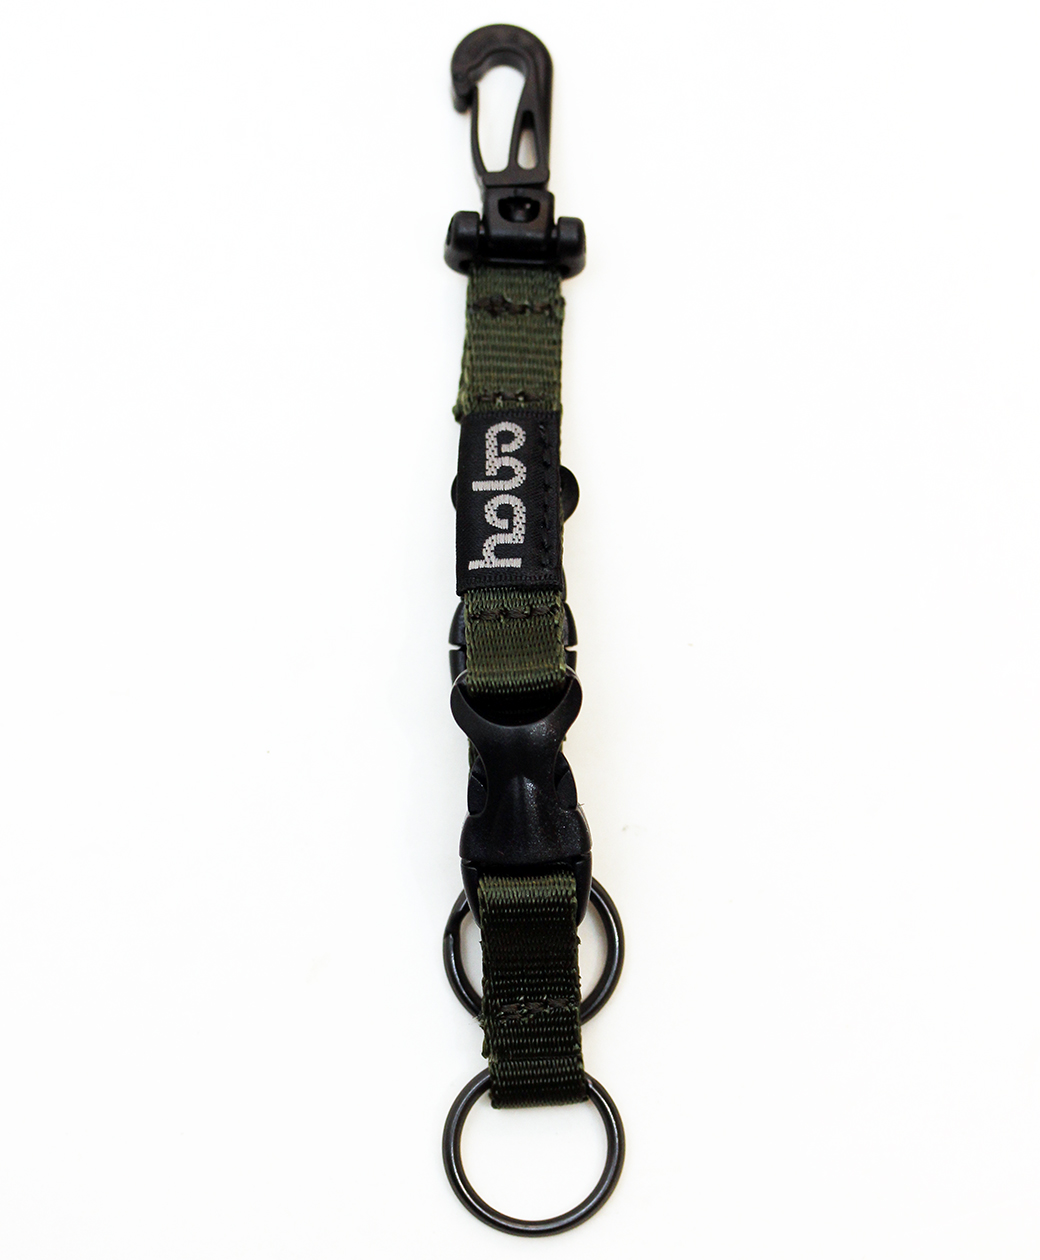 hobo NYLON TAPE KEY RING with DOUBLE BUCKLE RELEASE(OLIVE)